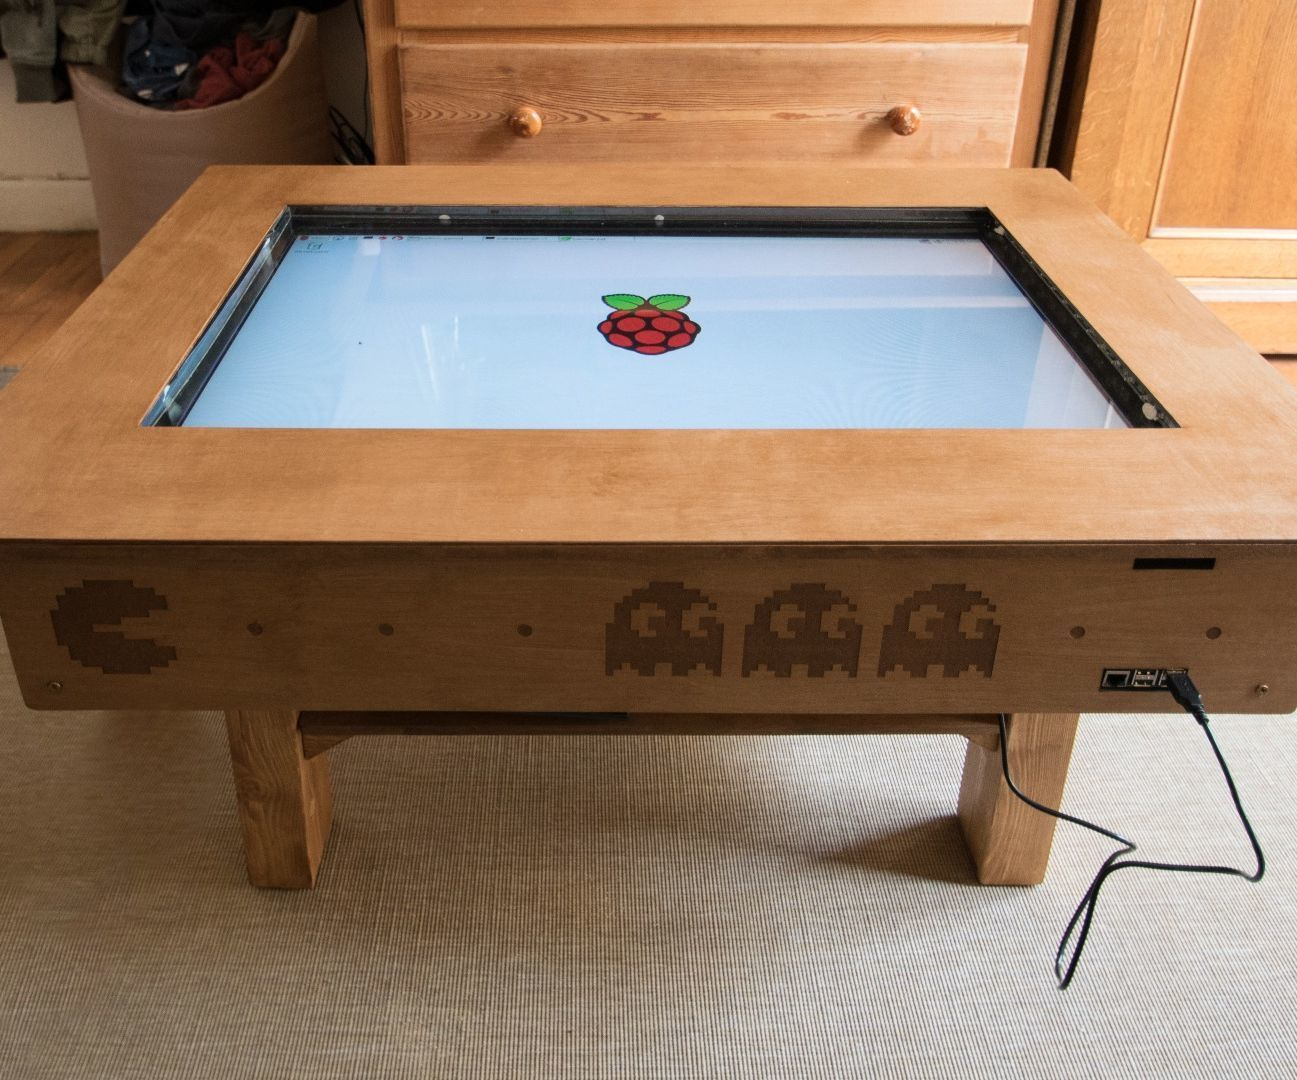 Touch Screen Coffee Table Diy With 32 Tv And Low Cost Ccd Sensor